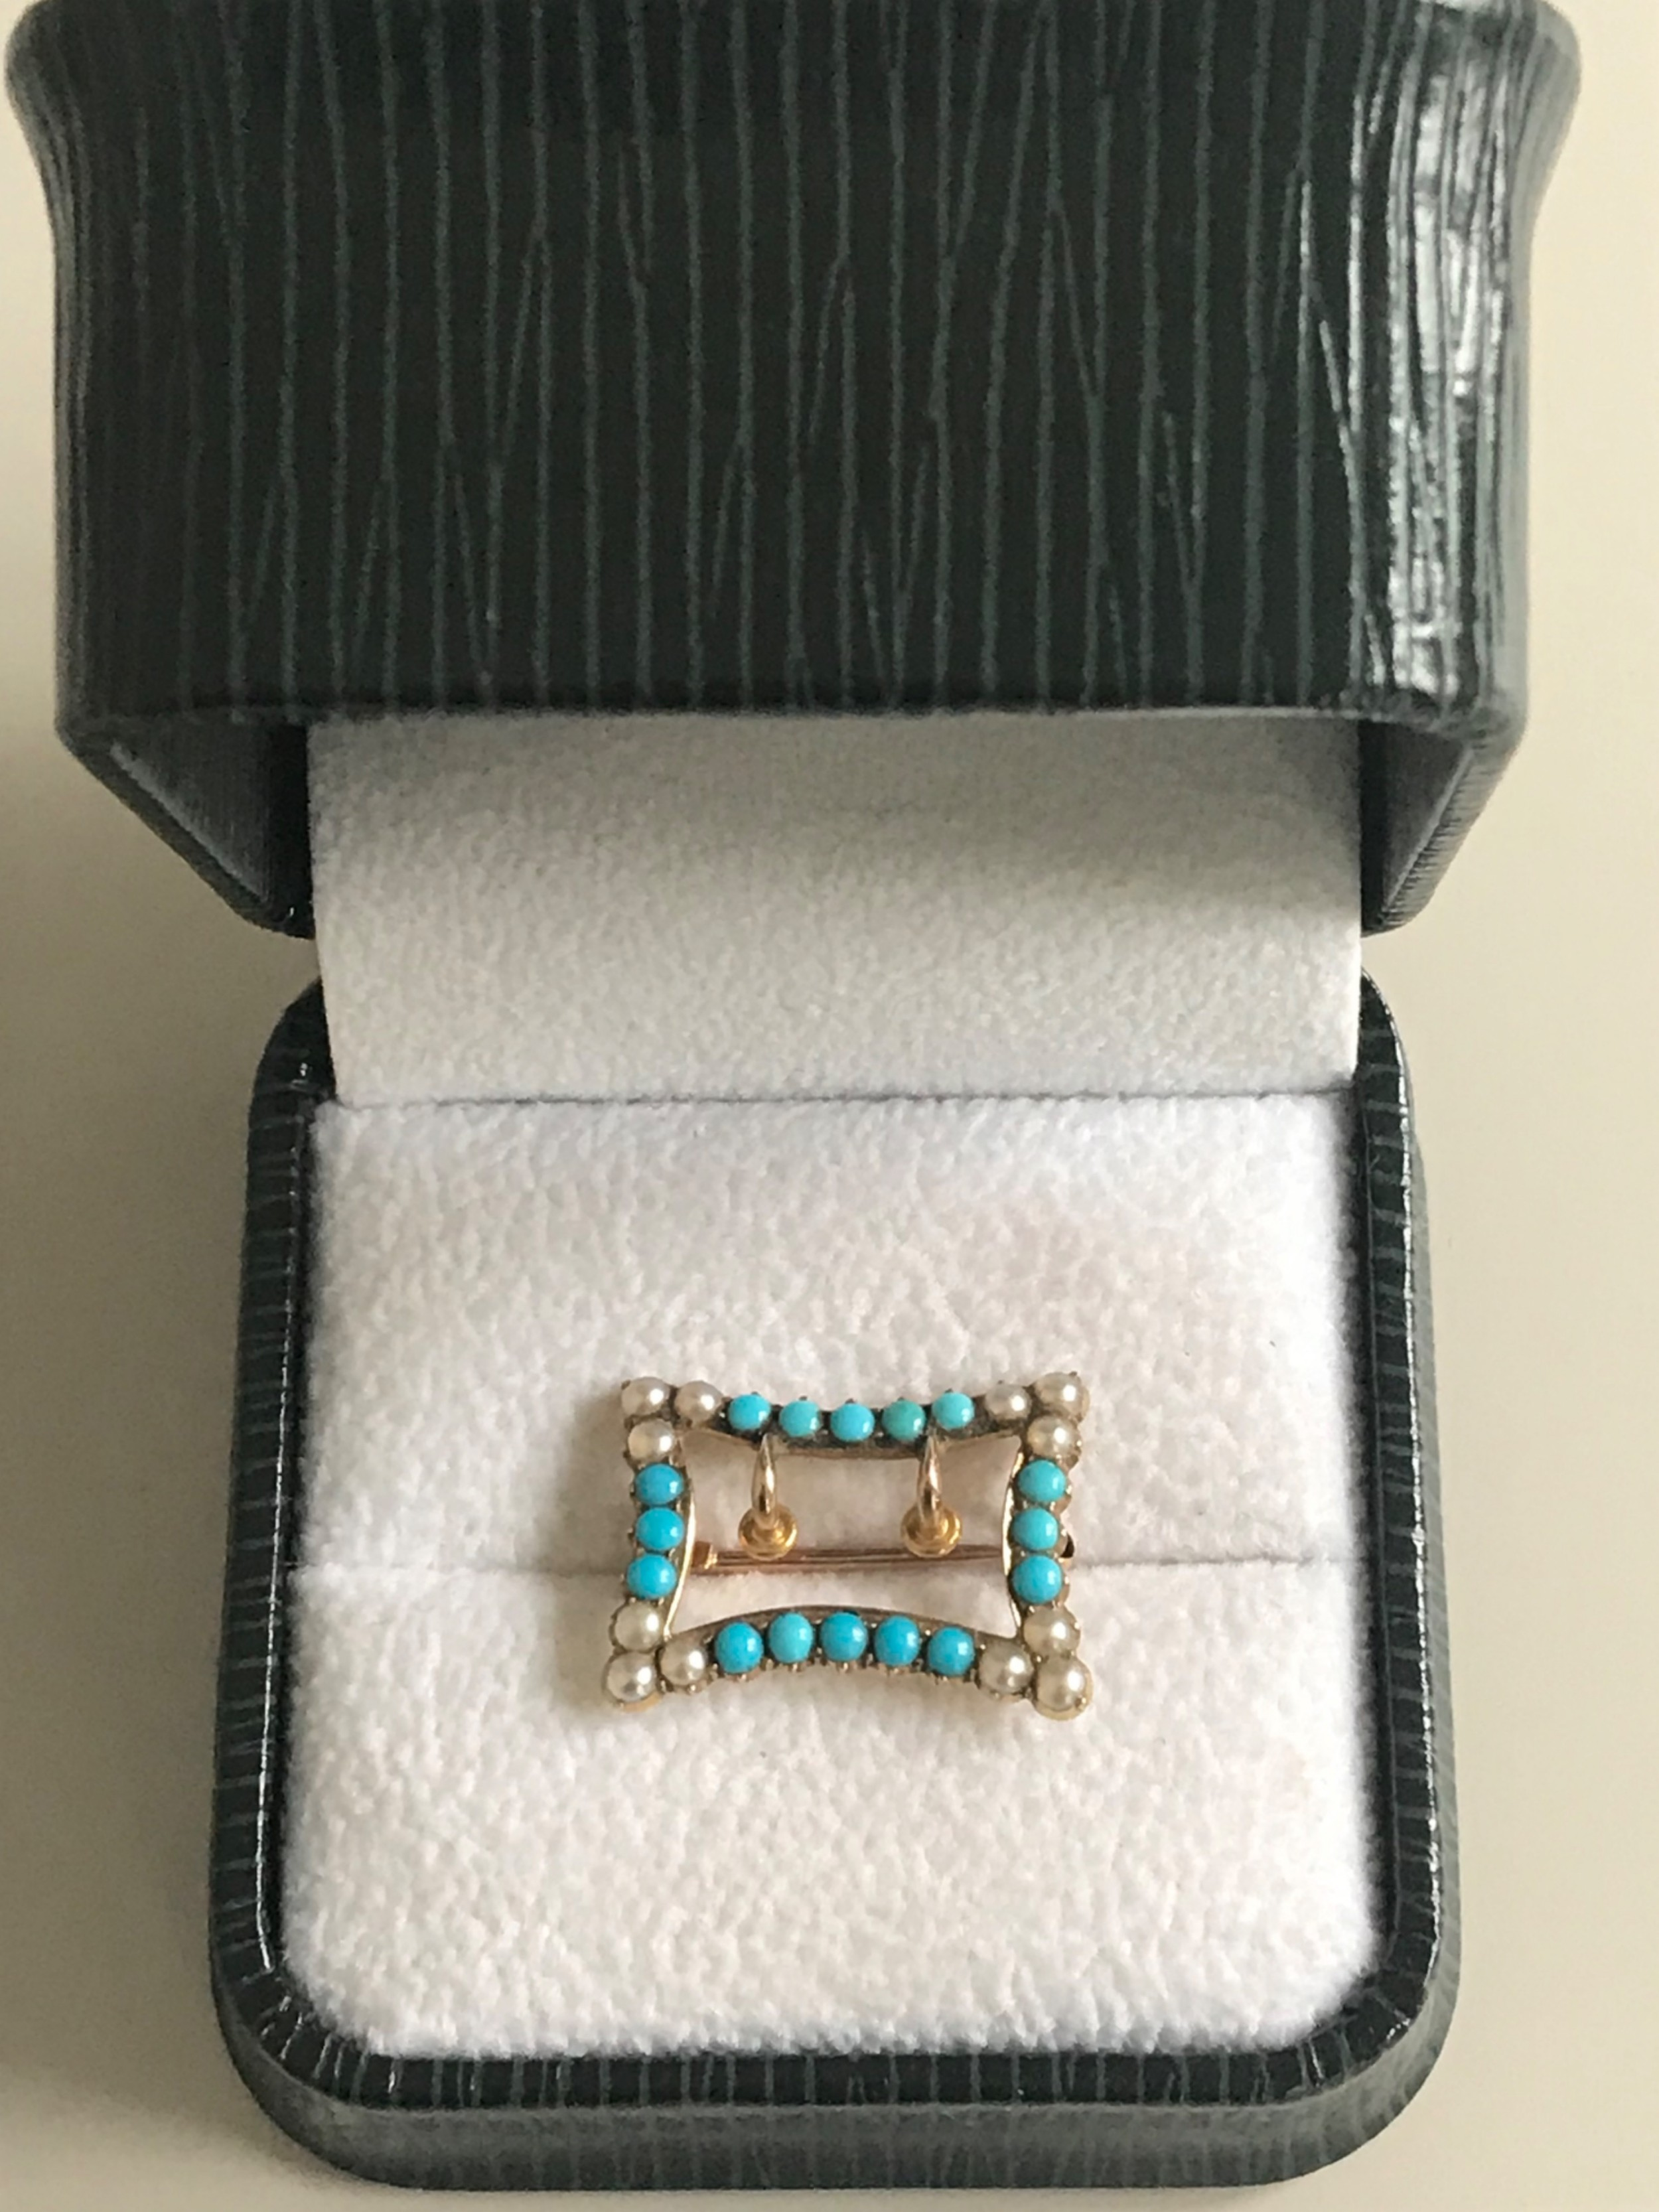 15 ct yellow gold turquoise and seed pearl buckle brooch